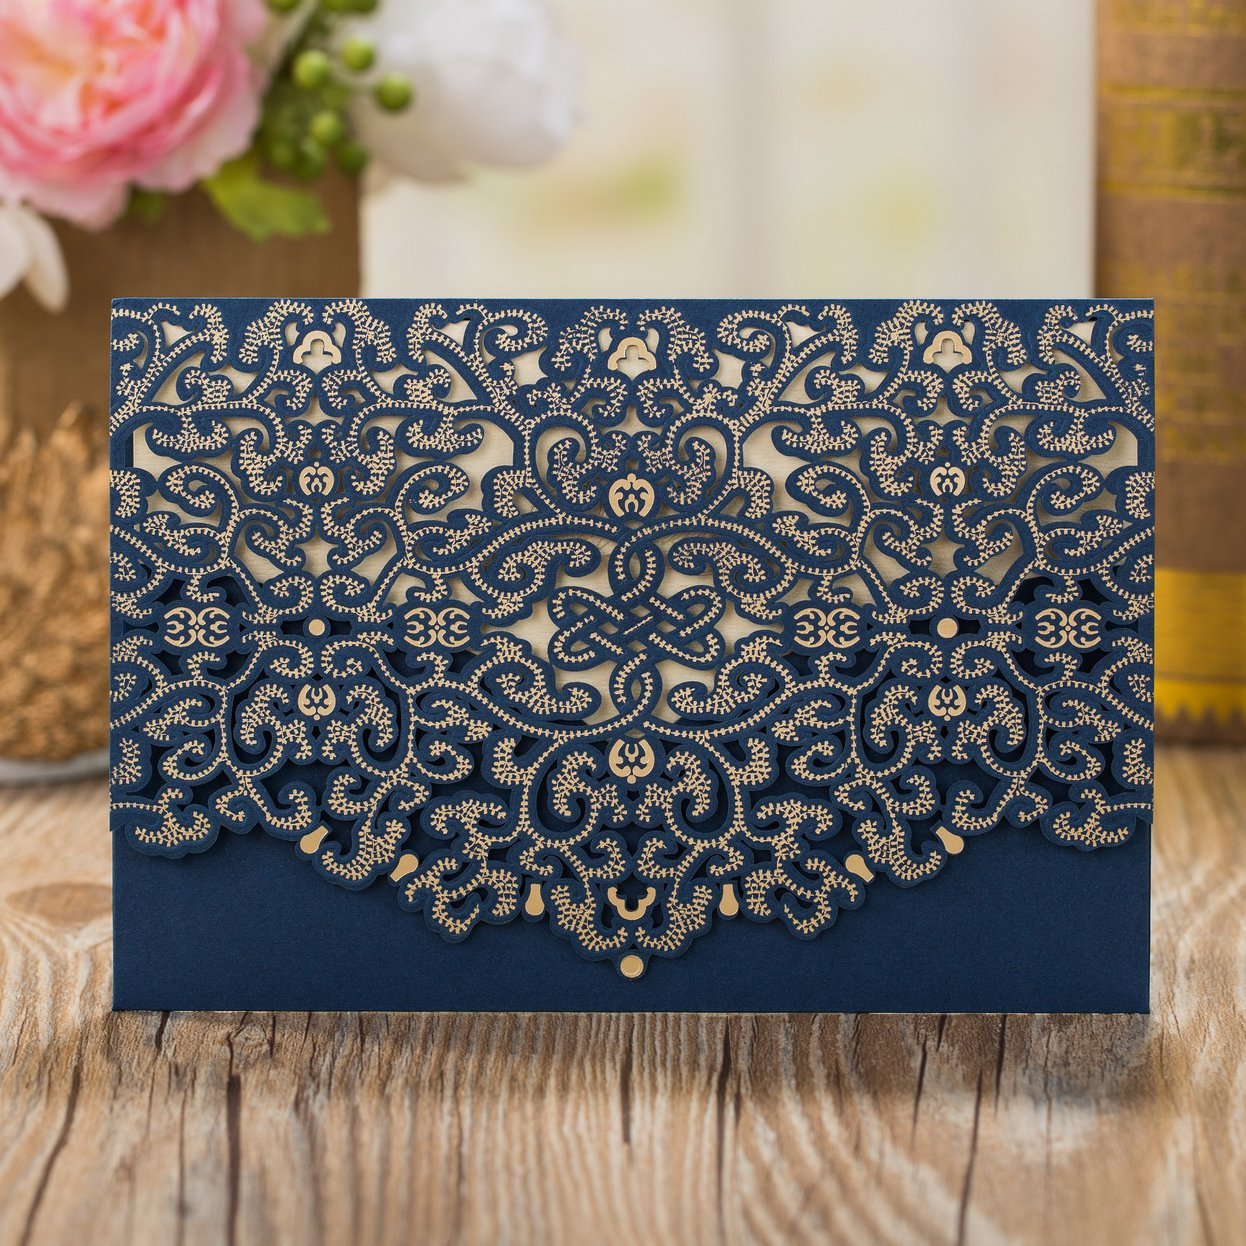 50pcs Elegant Laser Cut Wedding Invitations Cards with Envelopes and Stickers (Dark Blue)